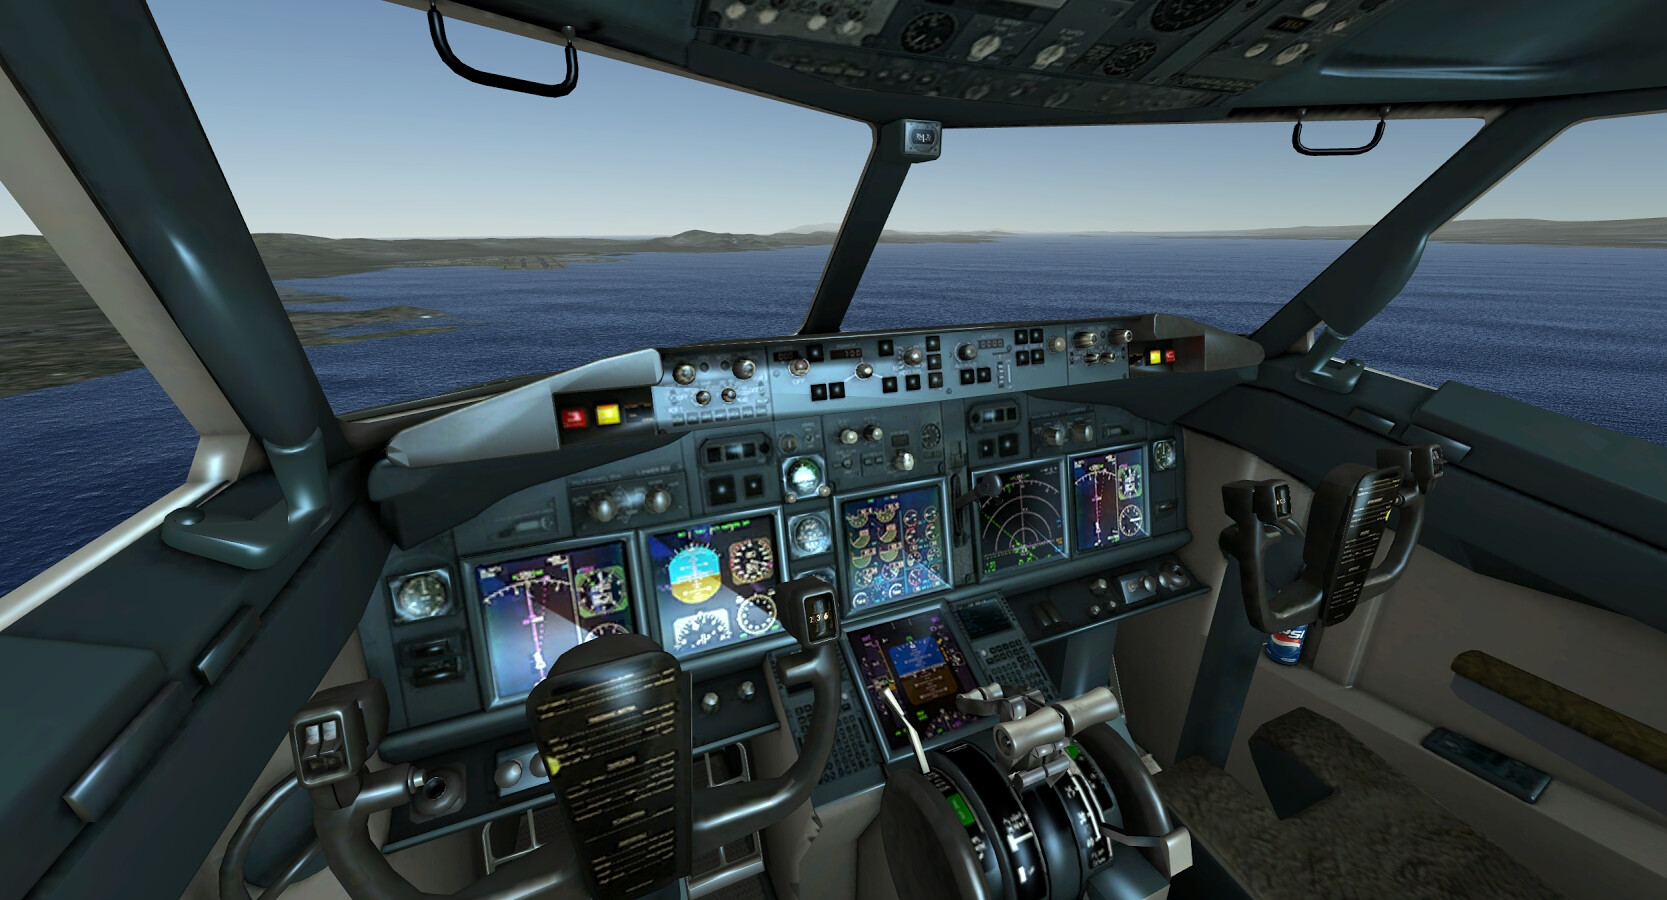 flight simulator home setup with Top 10 Flight Simulator Games For Android Id69368 on Download Games Grand Theft Auto Vice together with rseat also Next Level Racing Wheel Stand Pagws additionally Office Setup further How To Choose The Right Gaming  puter Desk.